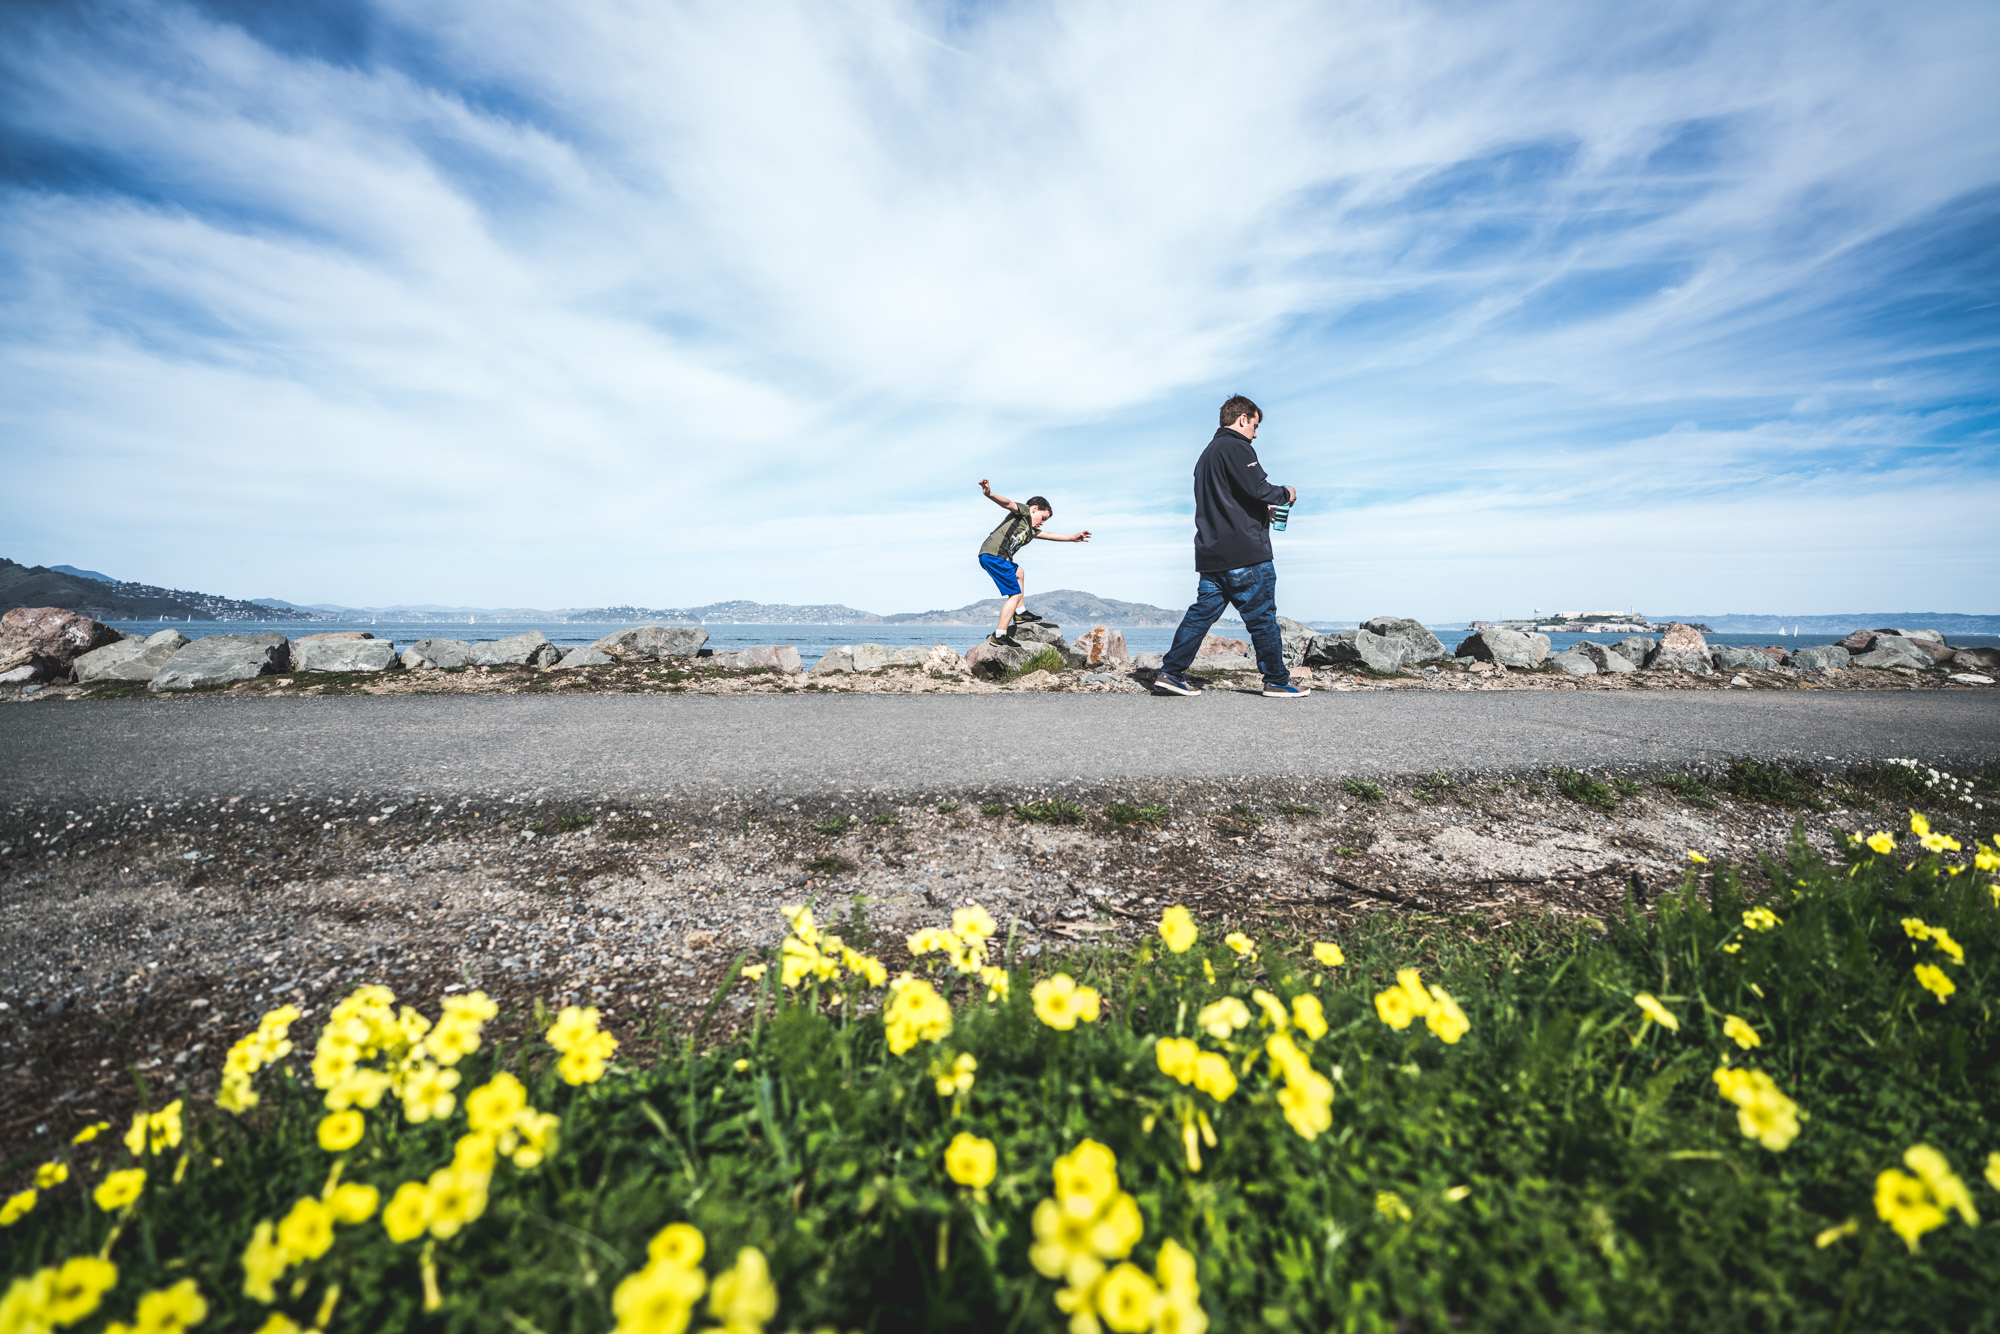 Color photo of a little boy trying to balance as he jumps along the rocks lining the ocean with yellow flowers lining the path in the foreground